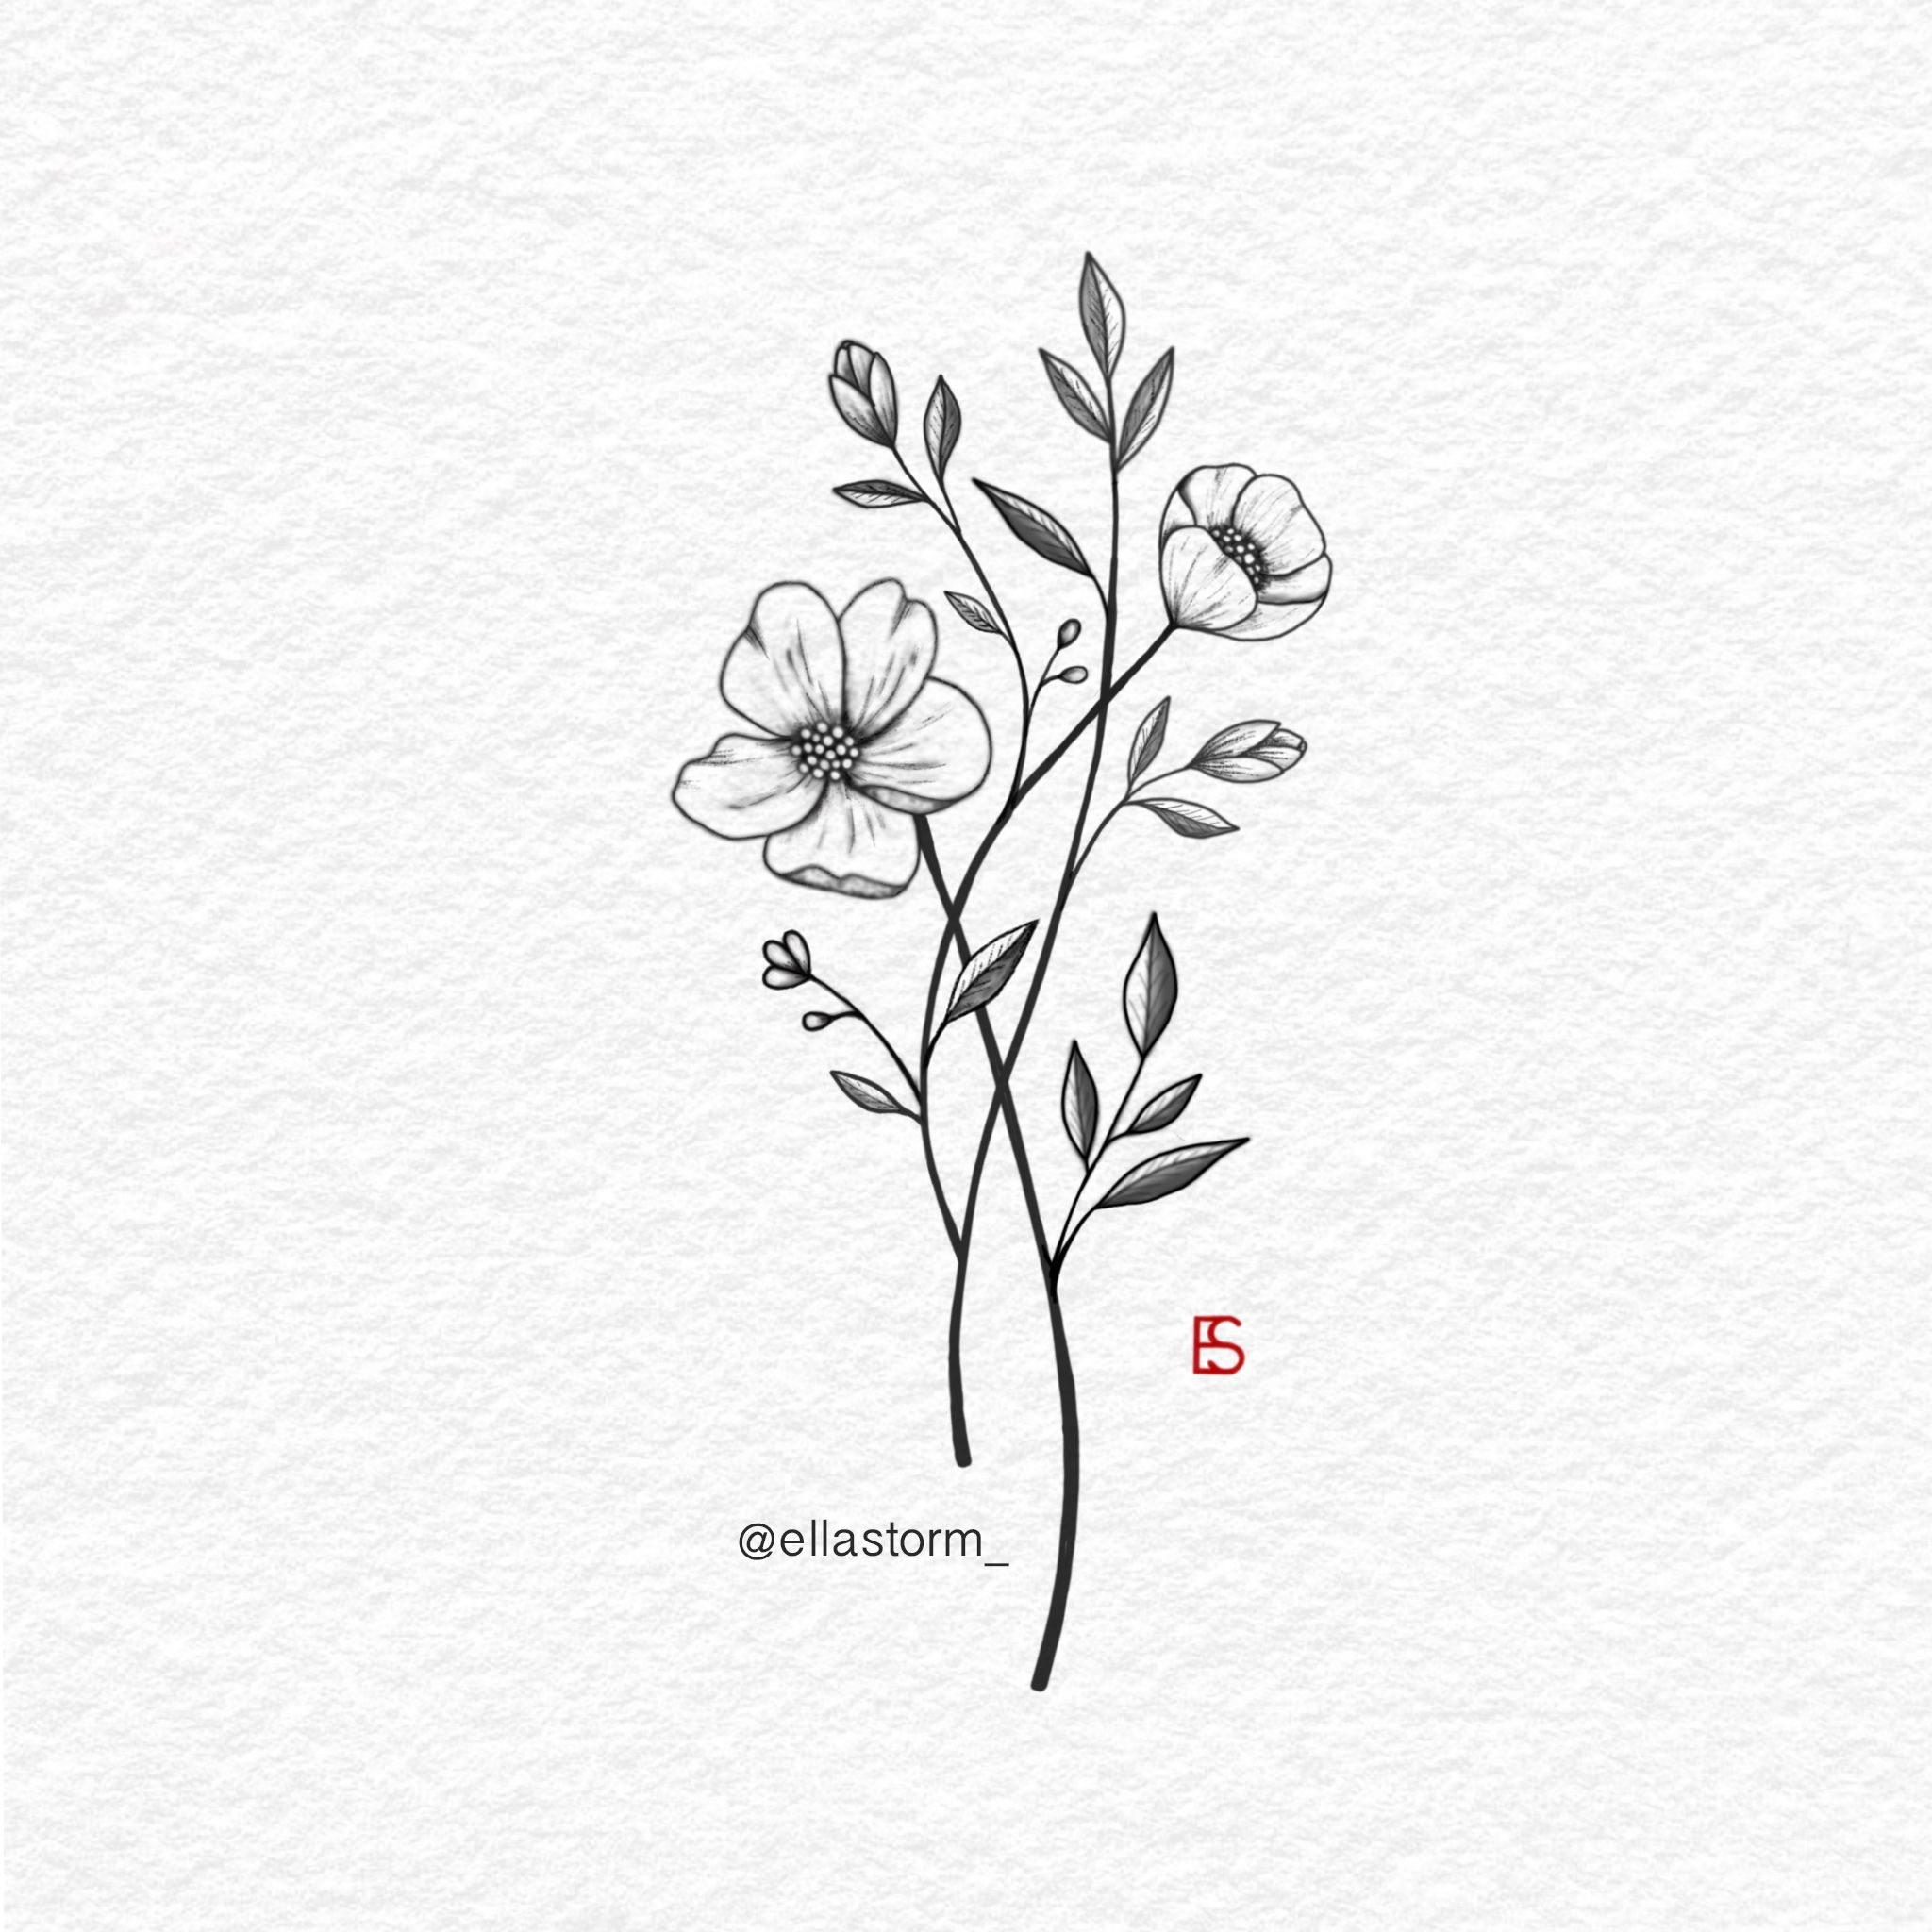 Wildflower Tattoo Design By Ella Storm Ellastorm Wildflower Tattoo Tattoos Small Flower Tattoos